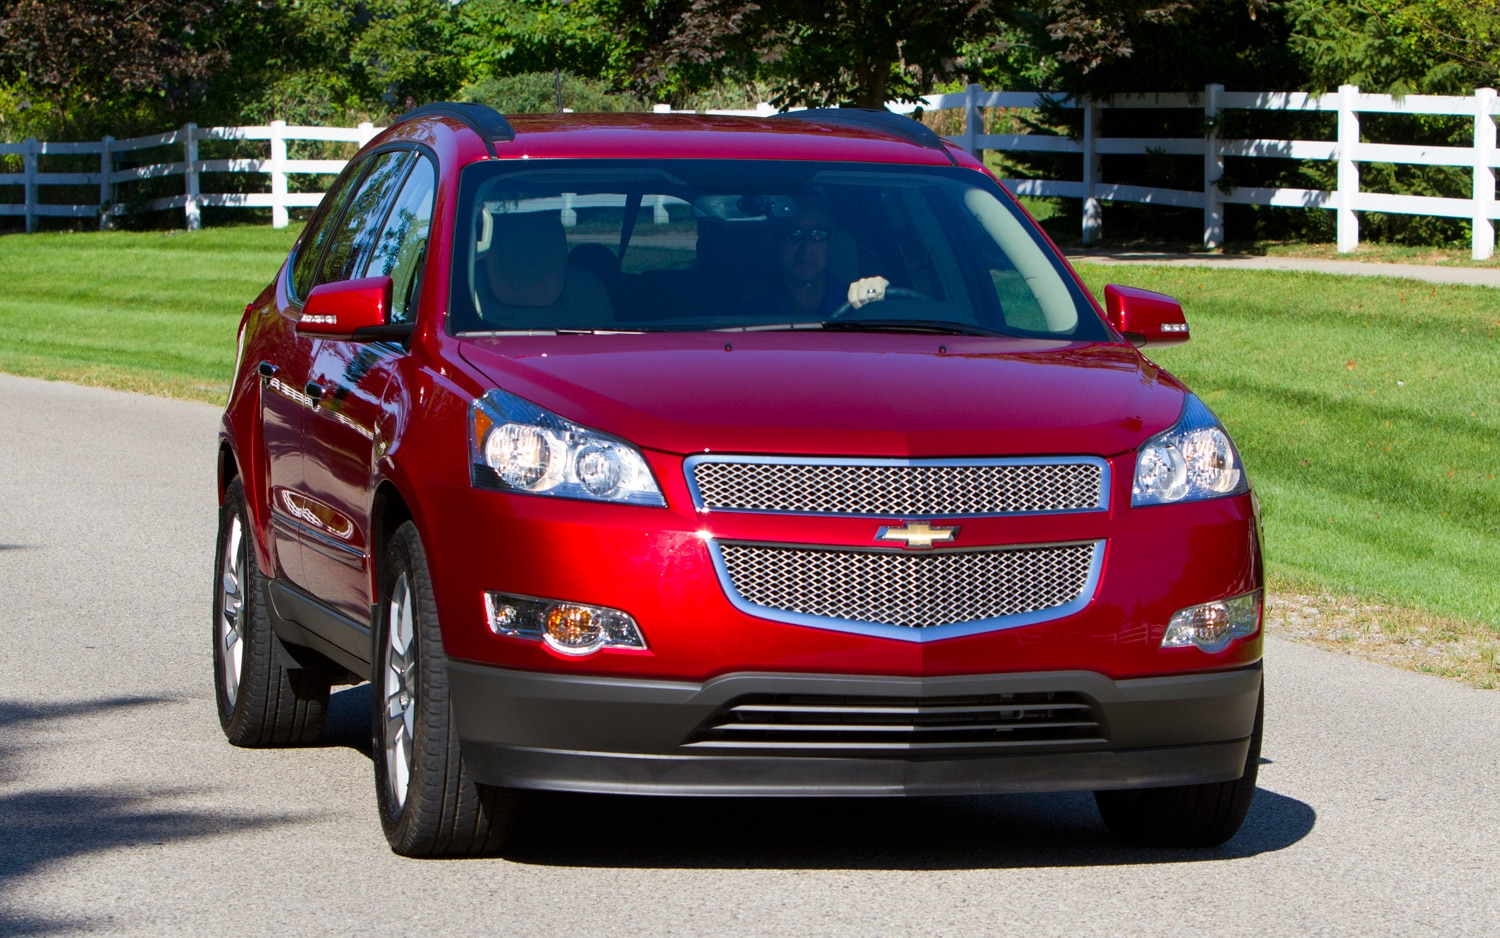 2013 buick enclave chevrolet traverse gmc acadia get front center airbag. Black Bedroom Furniture Sets. Home Design Ideas